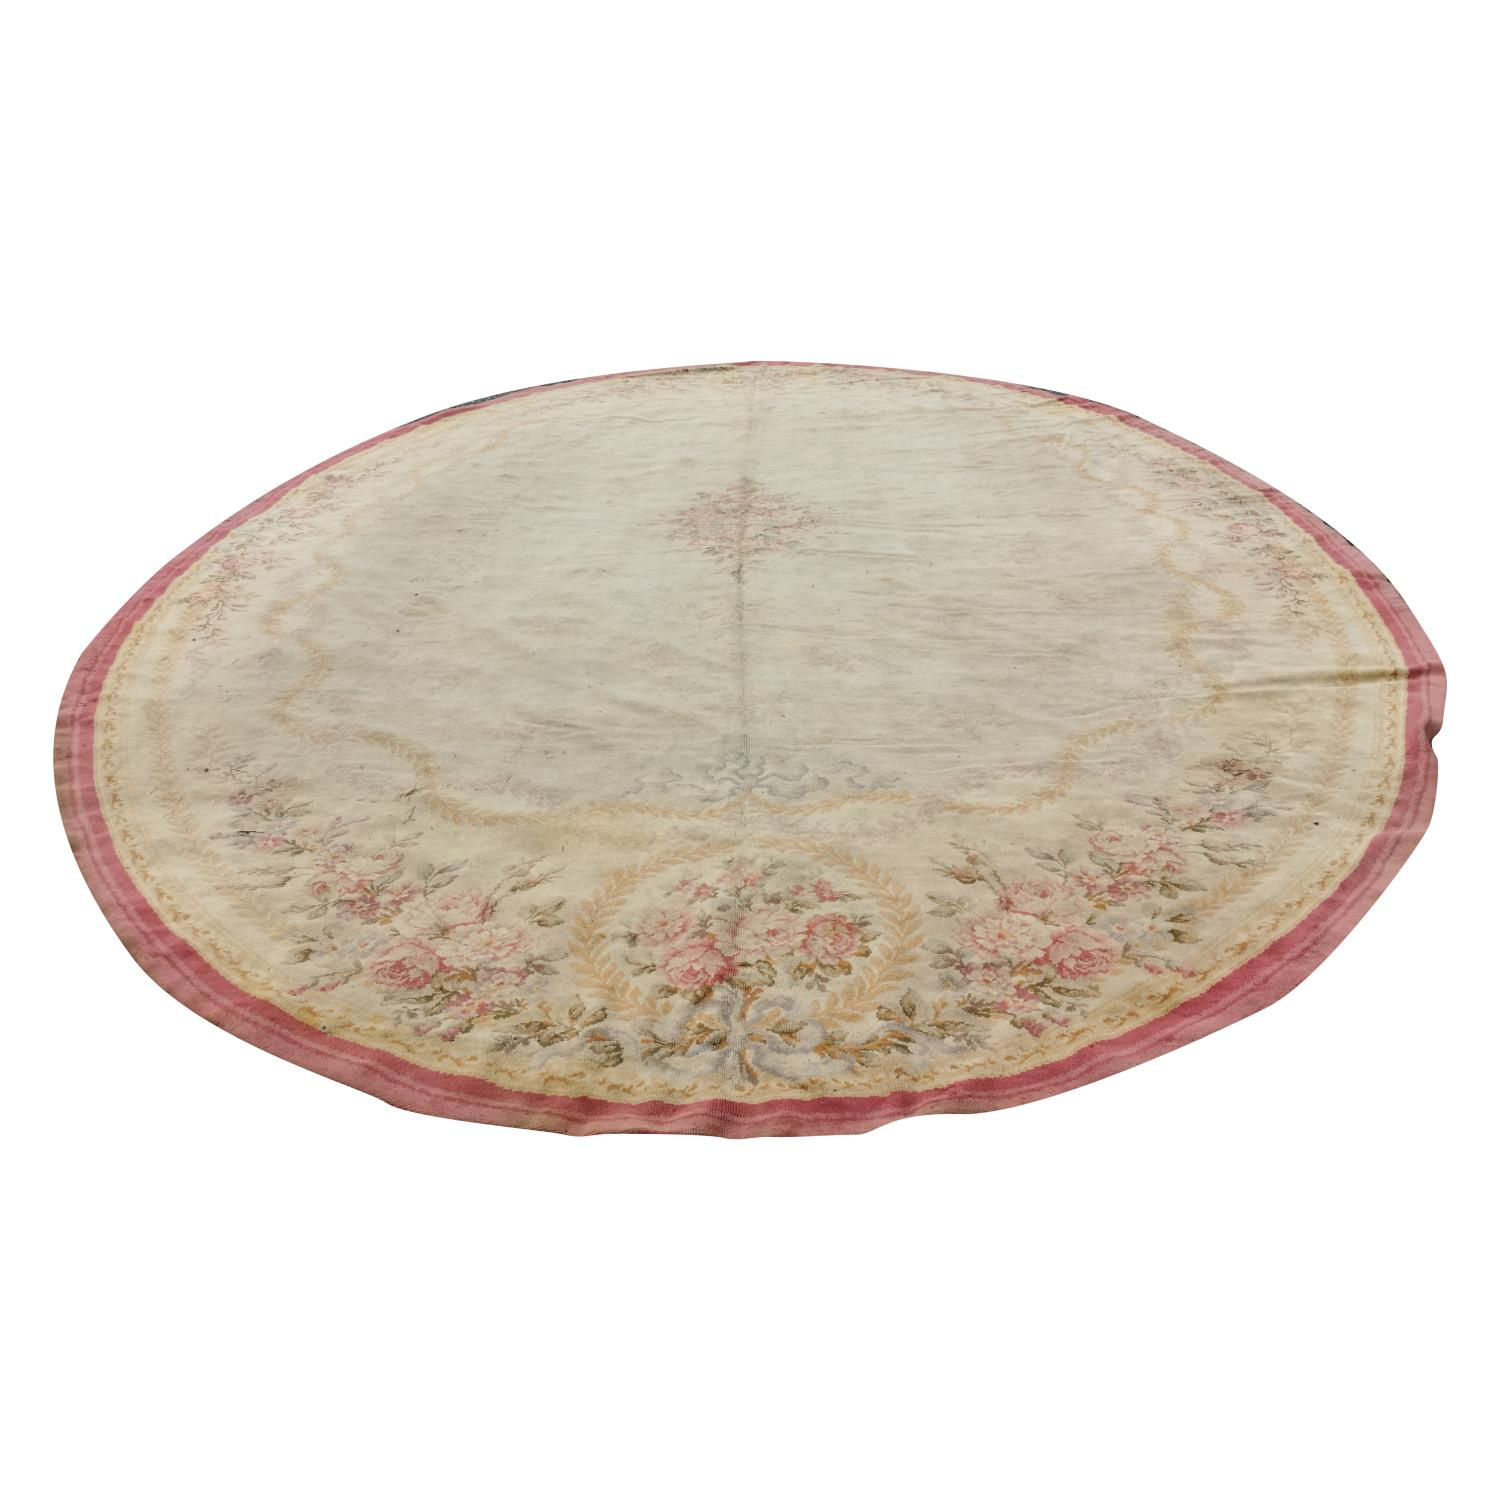 Large early 20th C. hand woven oval carpet. - Image 3 of 6